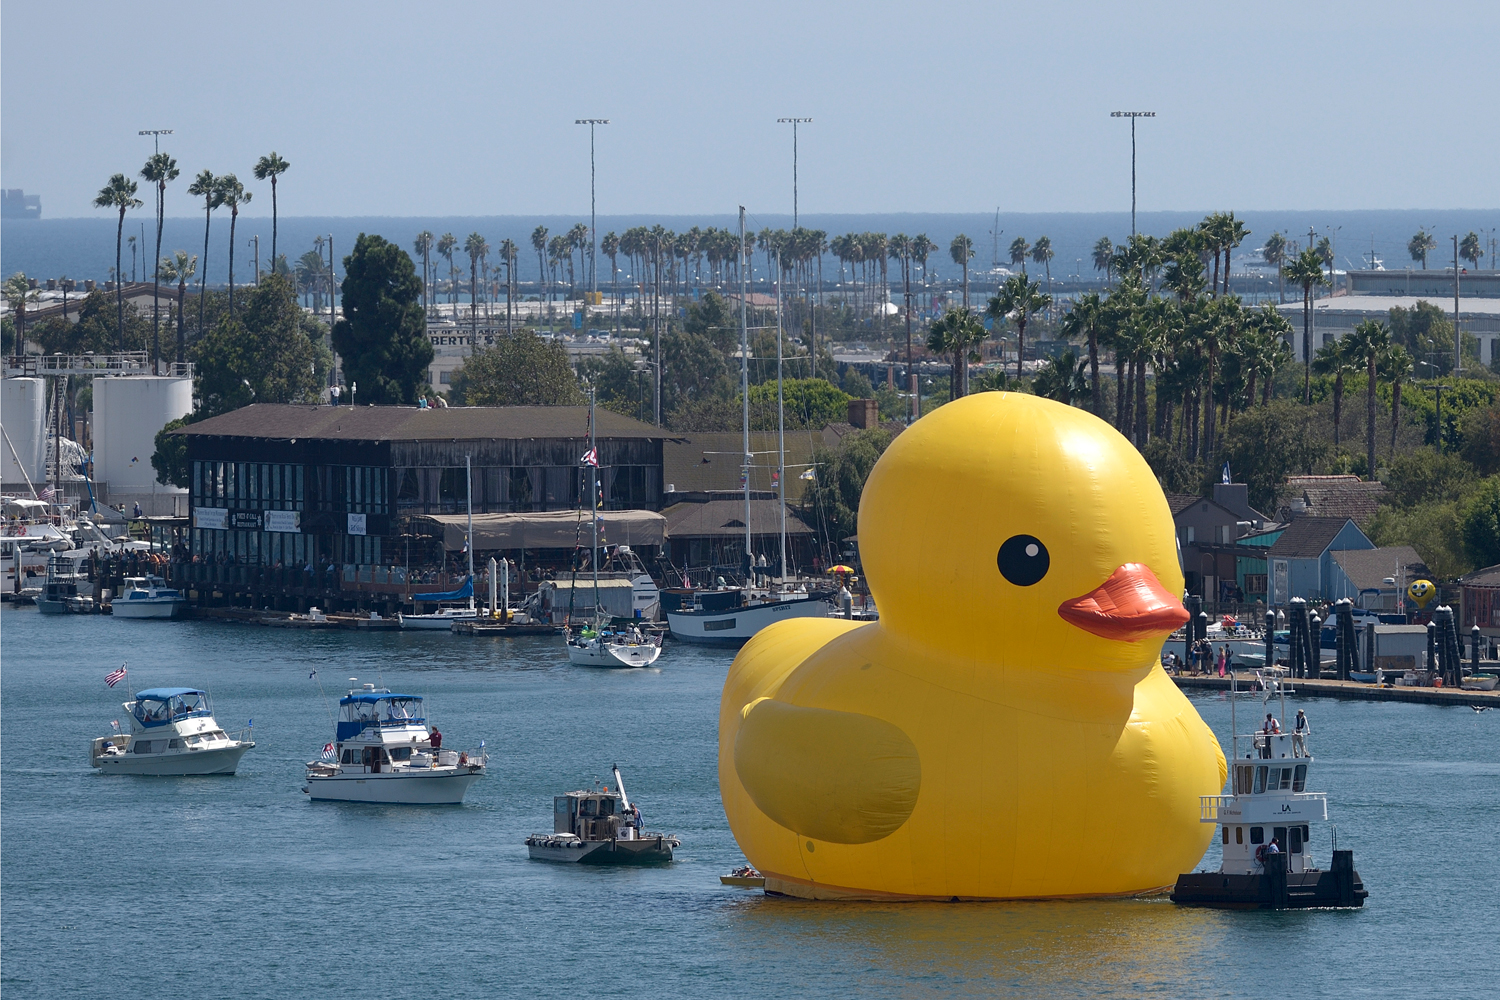 A giant yellow vinyl duck joins sailing ships and motorboats during the Tall Ships Festival L.A. parade in the Port of Los Angeles on Wednesday, Aug. 20, 2014.